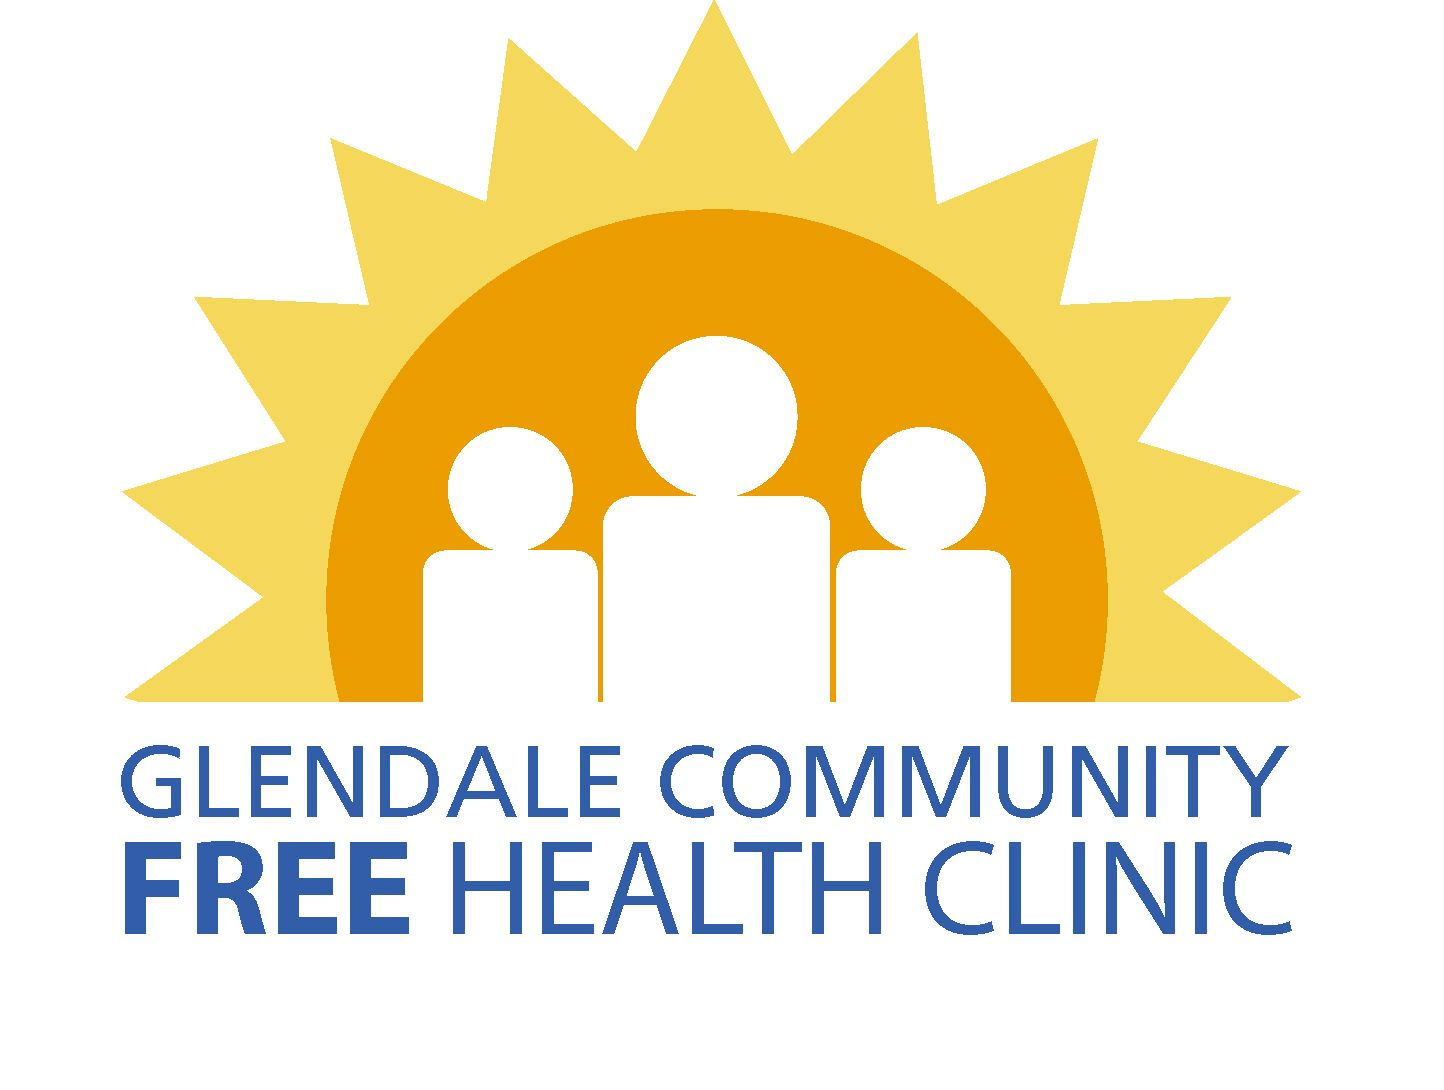 Glendale Community Free Health Clinic